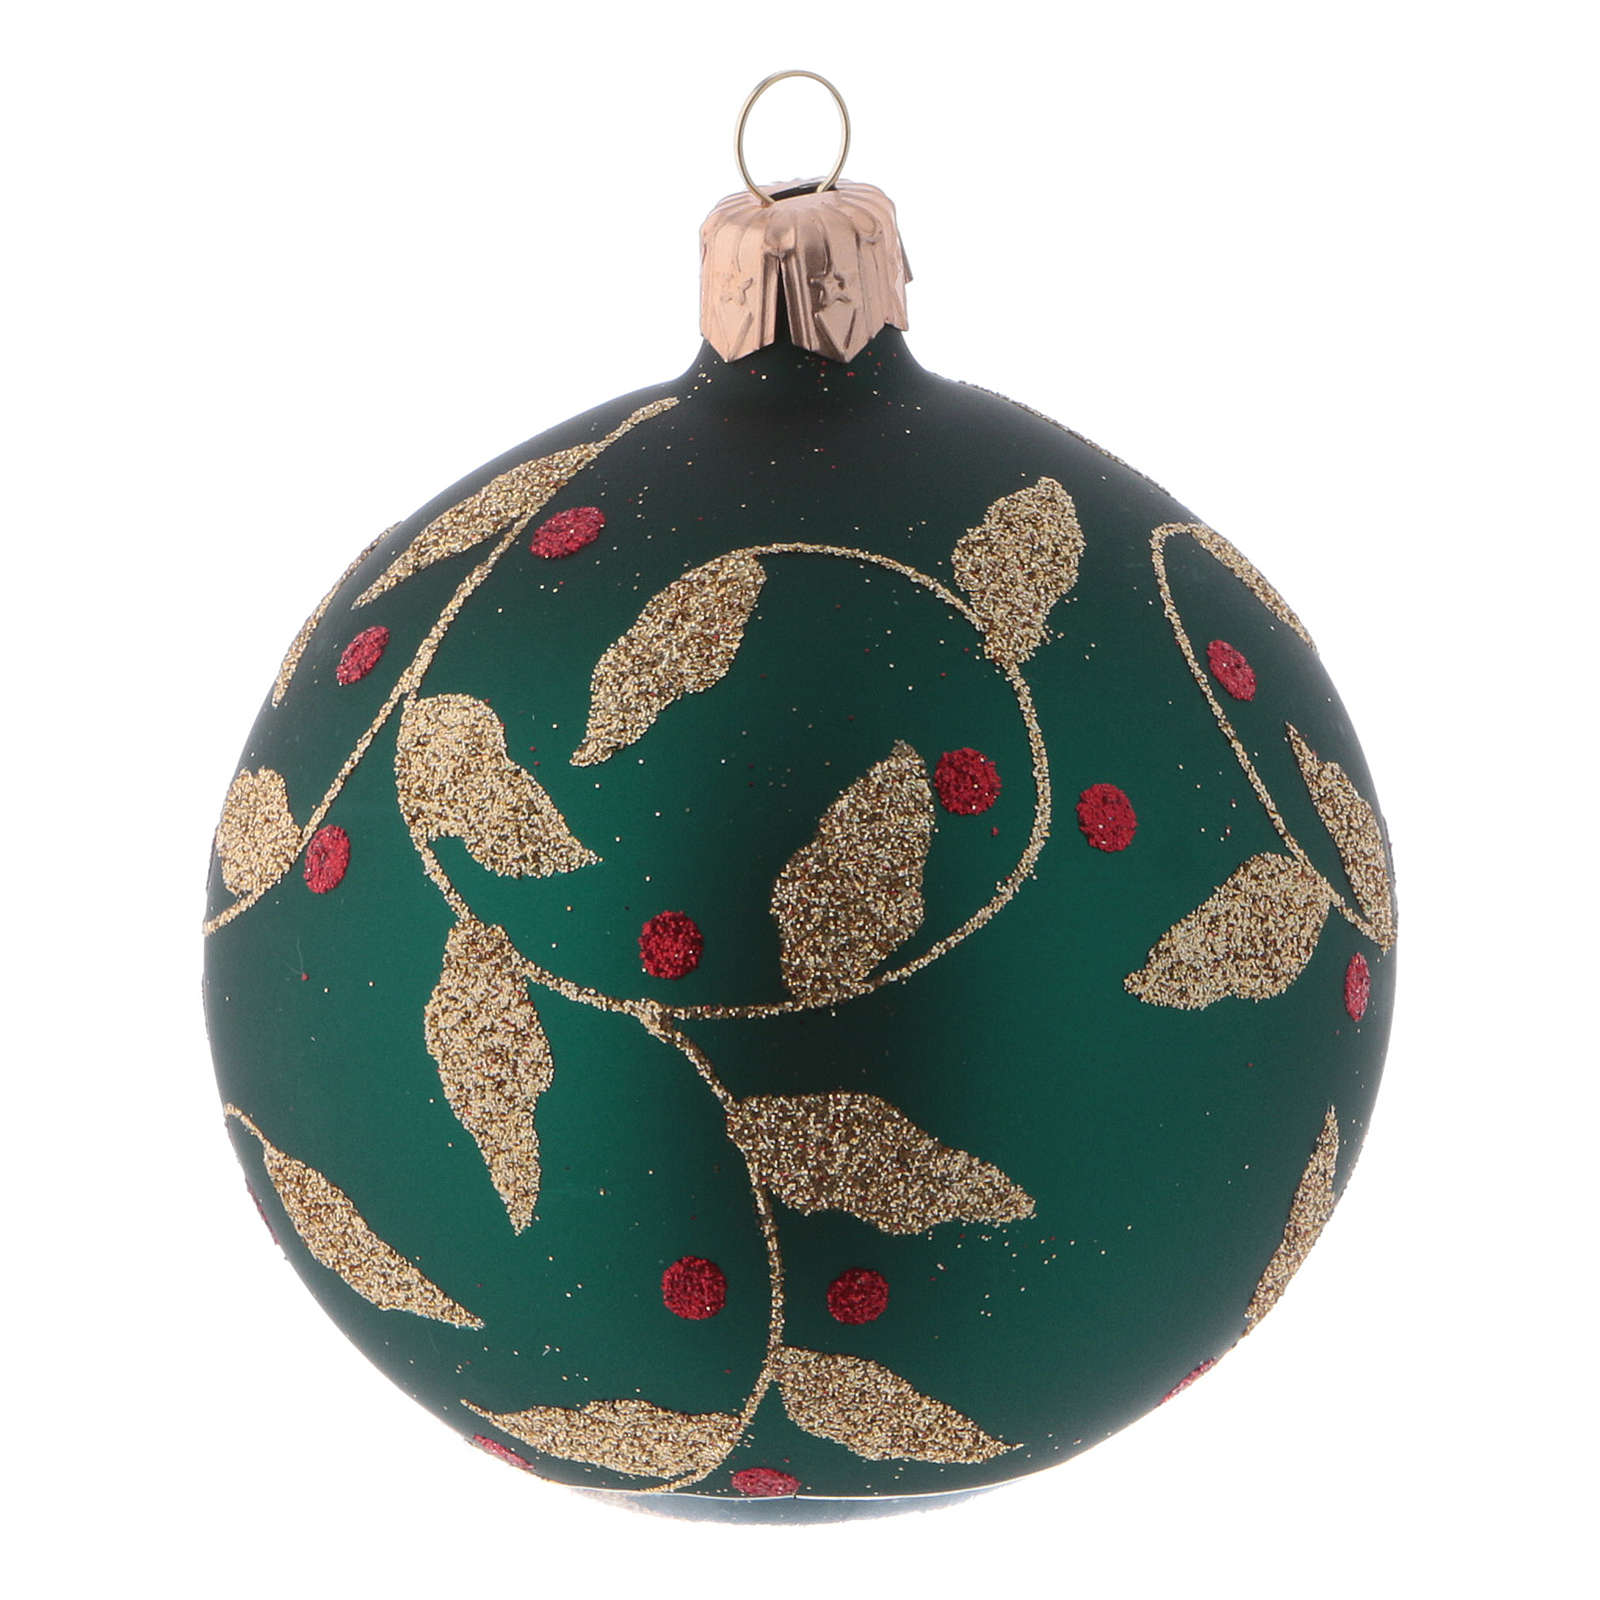 Blown glass Christmas balls 8 cm, green with gold leaves design, 6 pcs 4